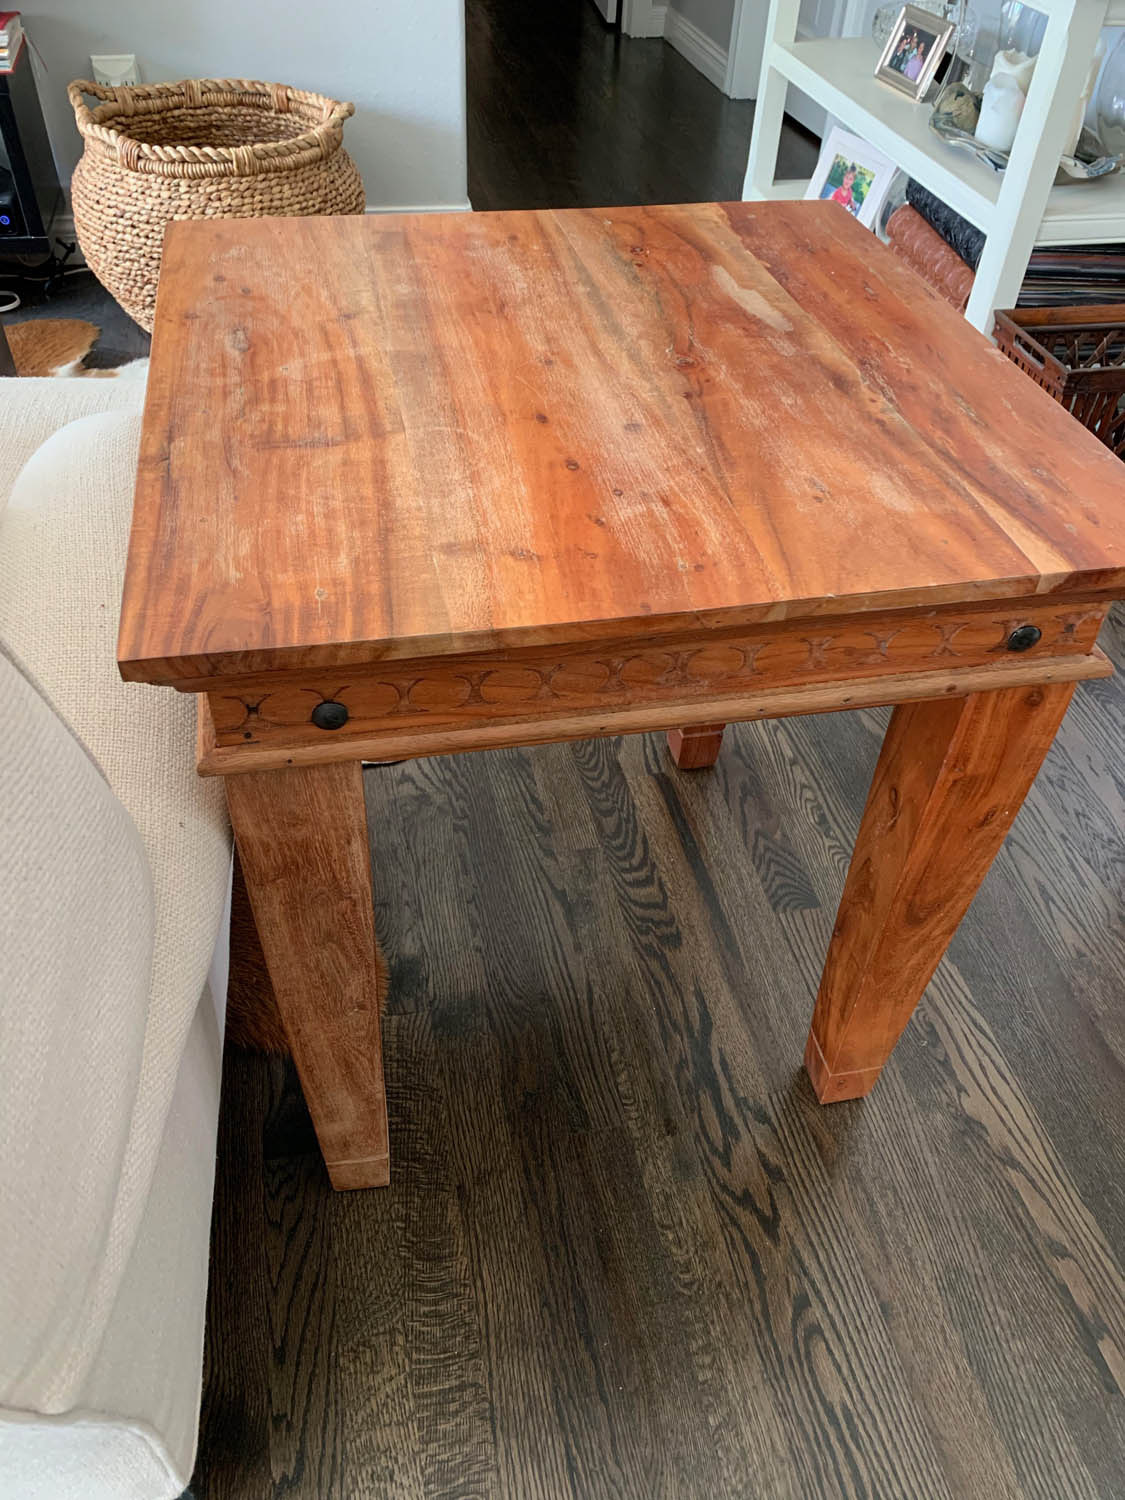 worn end table before thrifty chalk paint applied